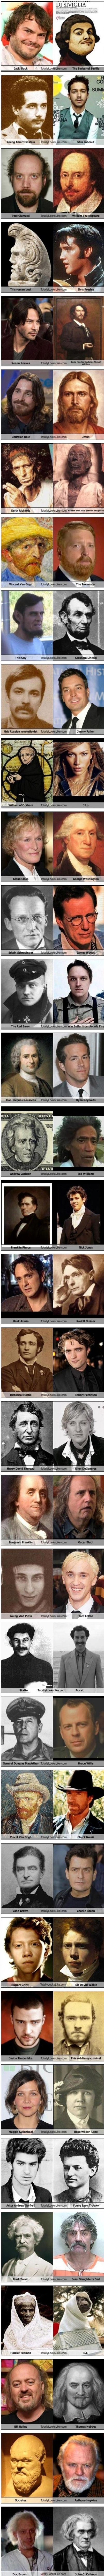 Totally Looks Like Celebrities